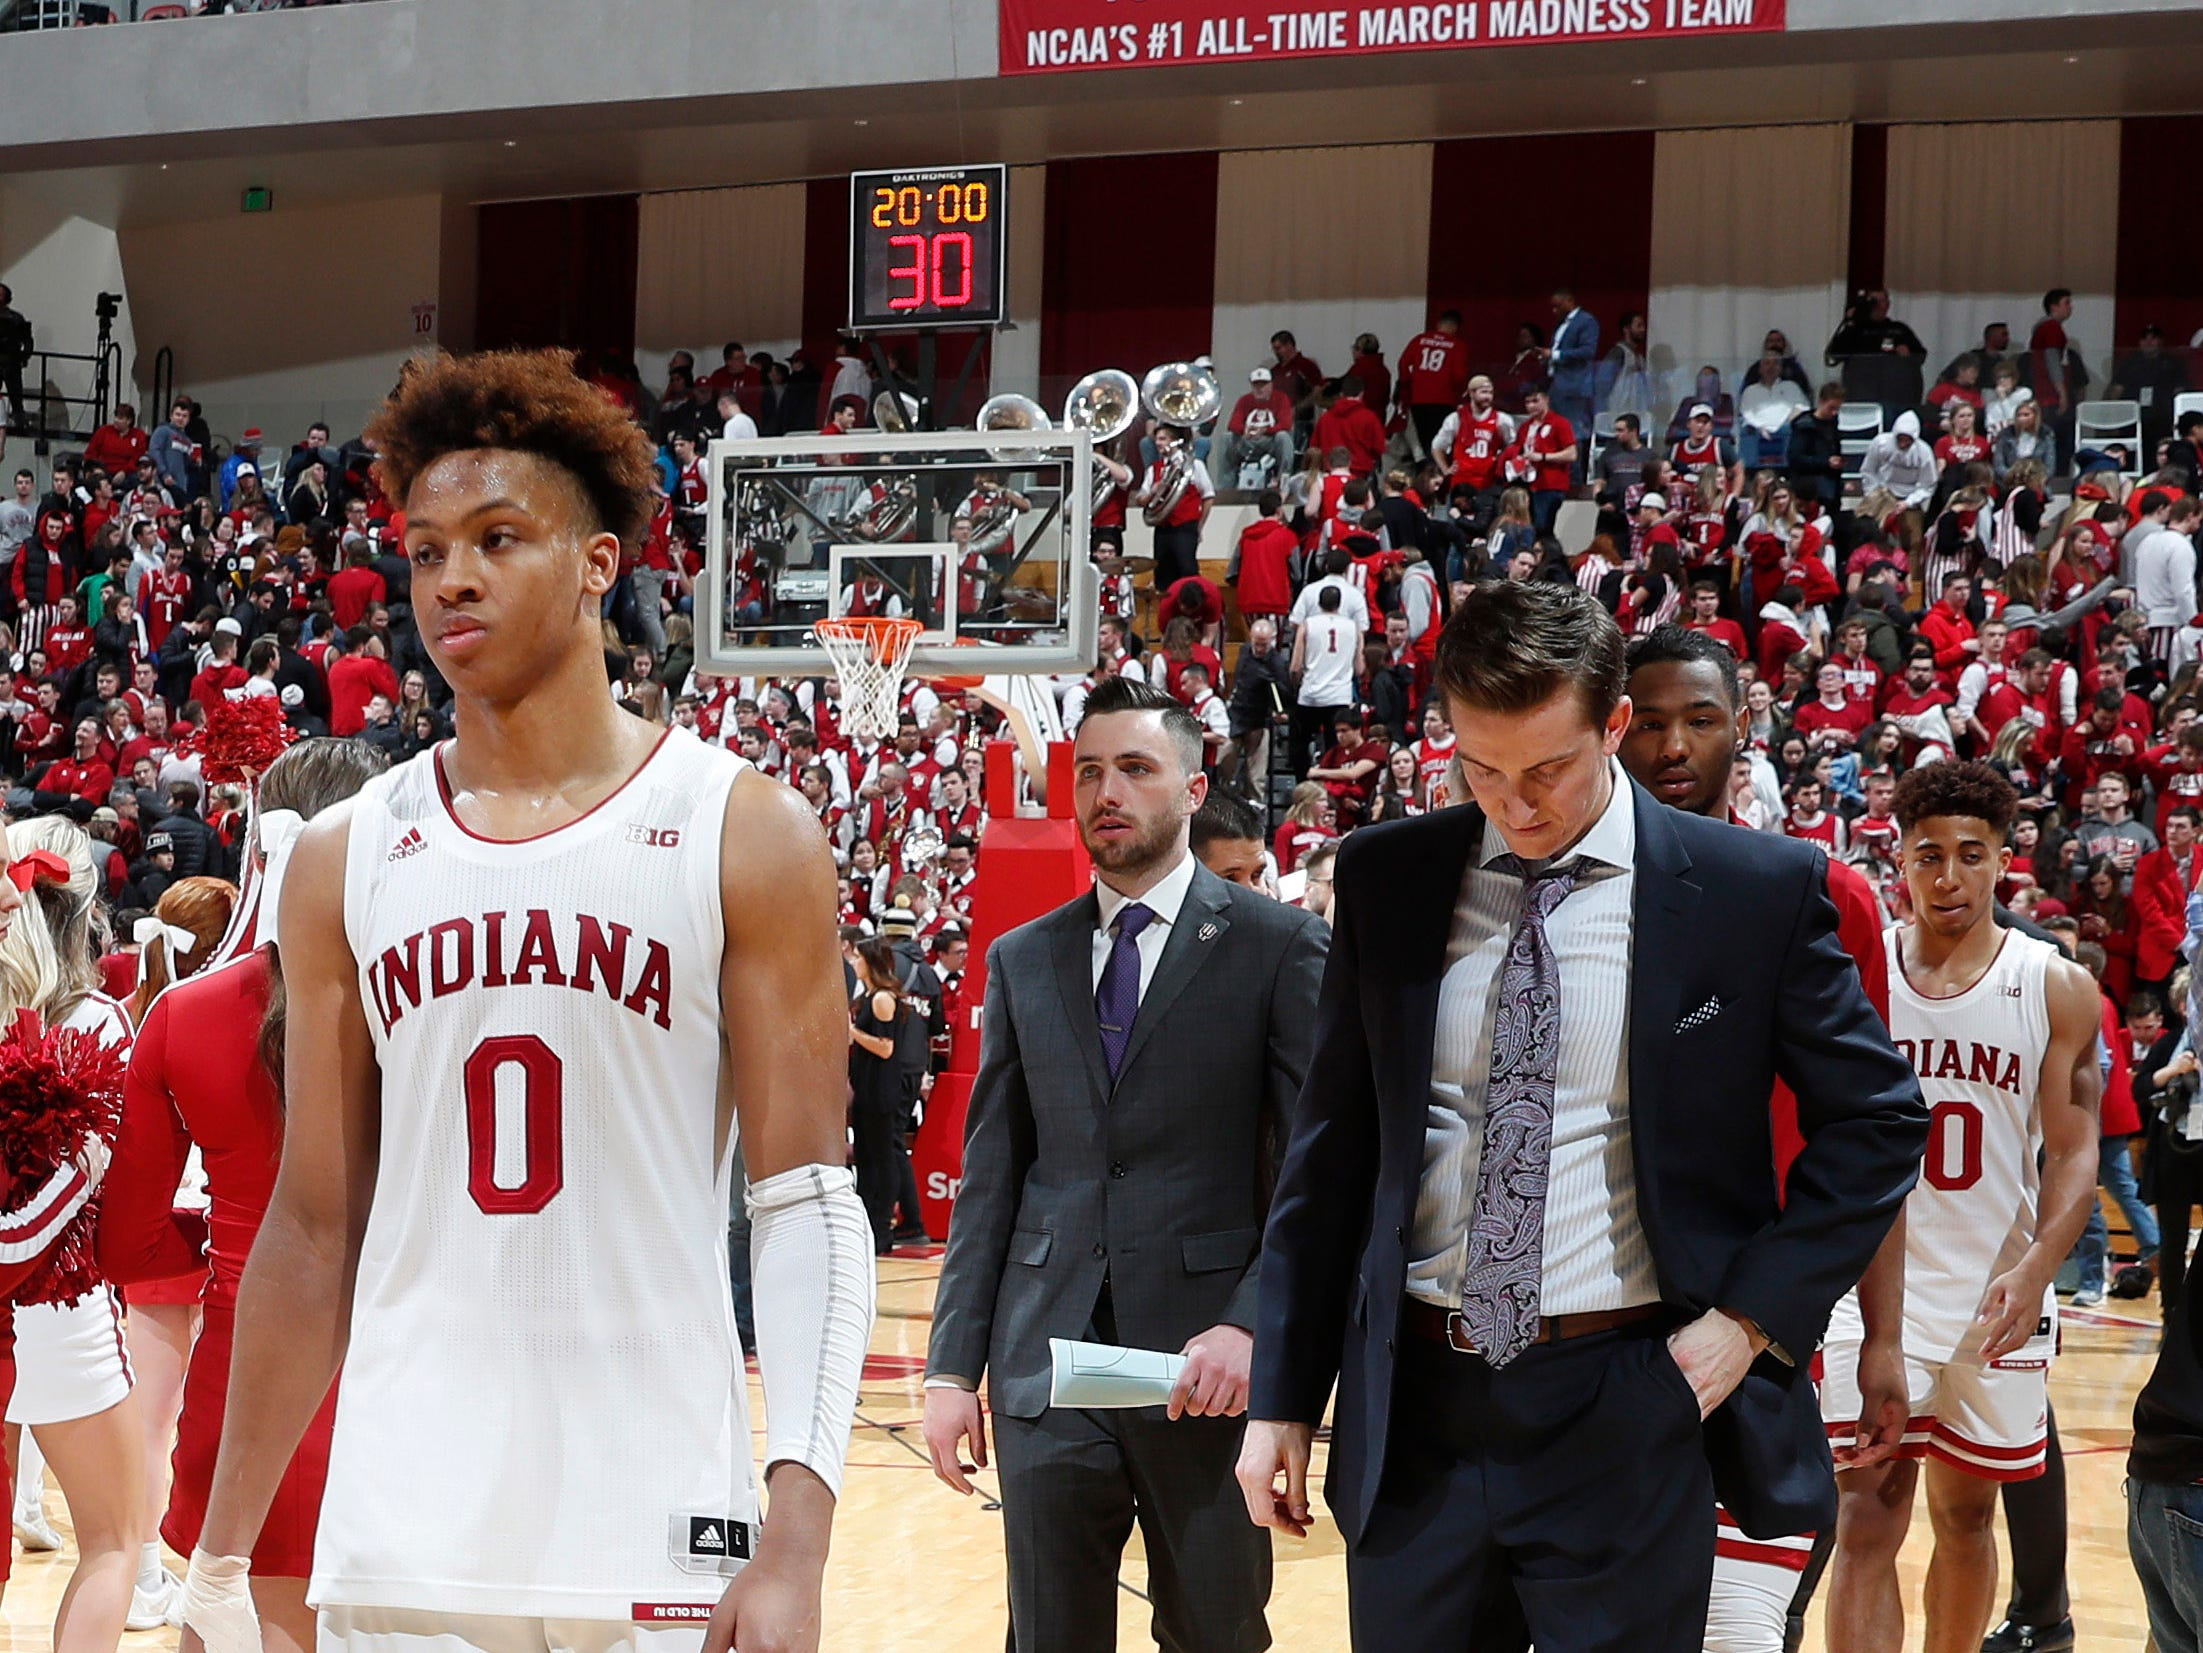 Feb 19, 2019; Bloomington, IN, USA; Indiana Hoosiers guard Romeo Langford (0) walks off the floor after the game against the Purdue Boilermakers at Assembly Hall. Mandatory Credit: Brian Spurlock-USA TODAY Sports